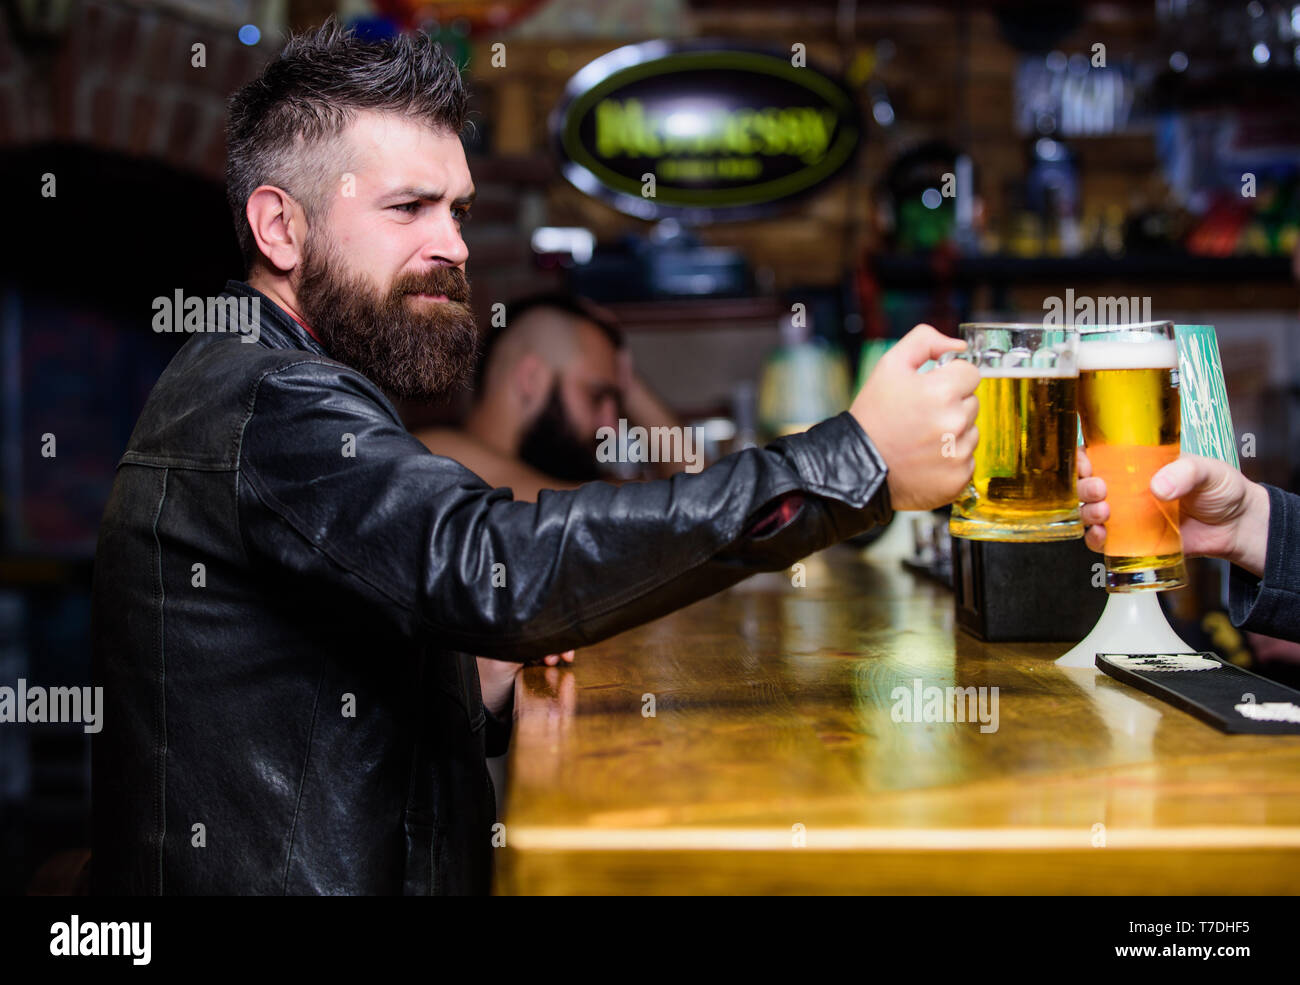 Cheers concept. Glasses with fresh lager draft beer with foam. Men hipster hold mugs filled with cold tasty beer in bar. Friday leisure tradition. Beer mugs at bar counter defocused background. - Stock Image